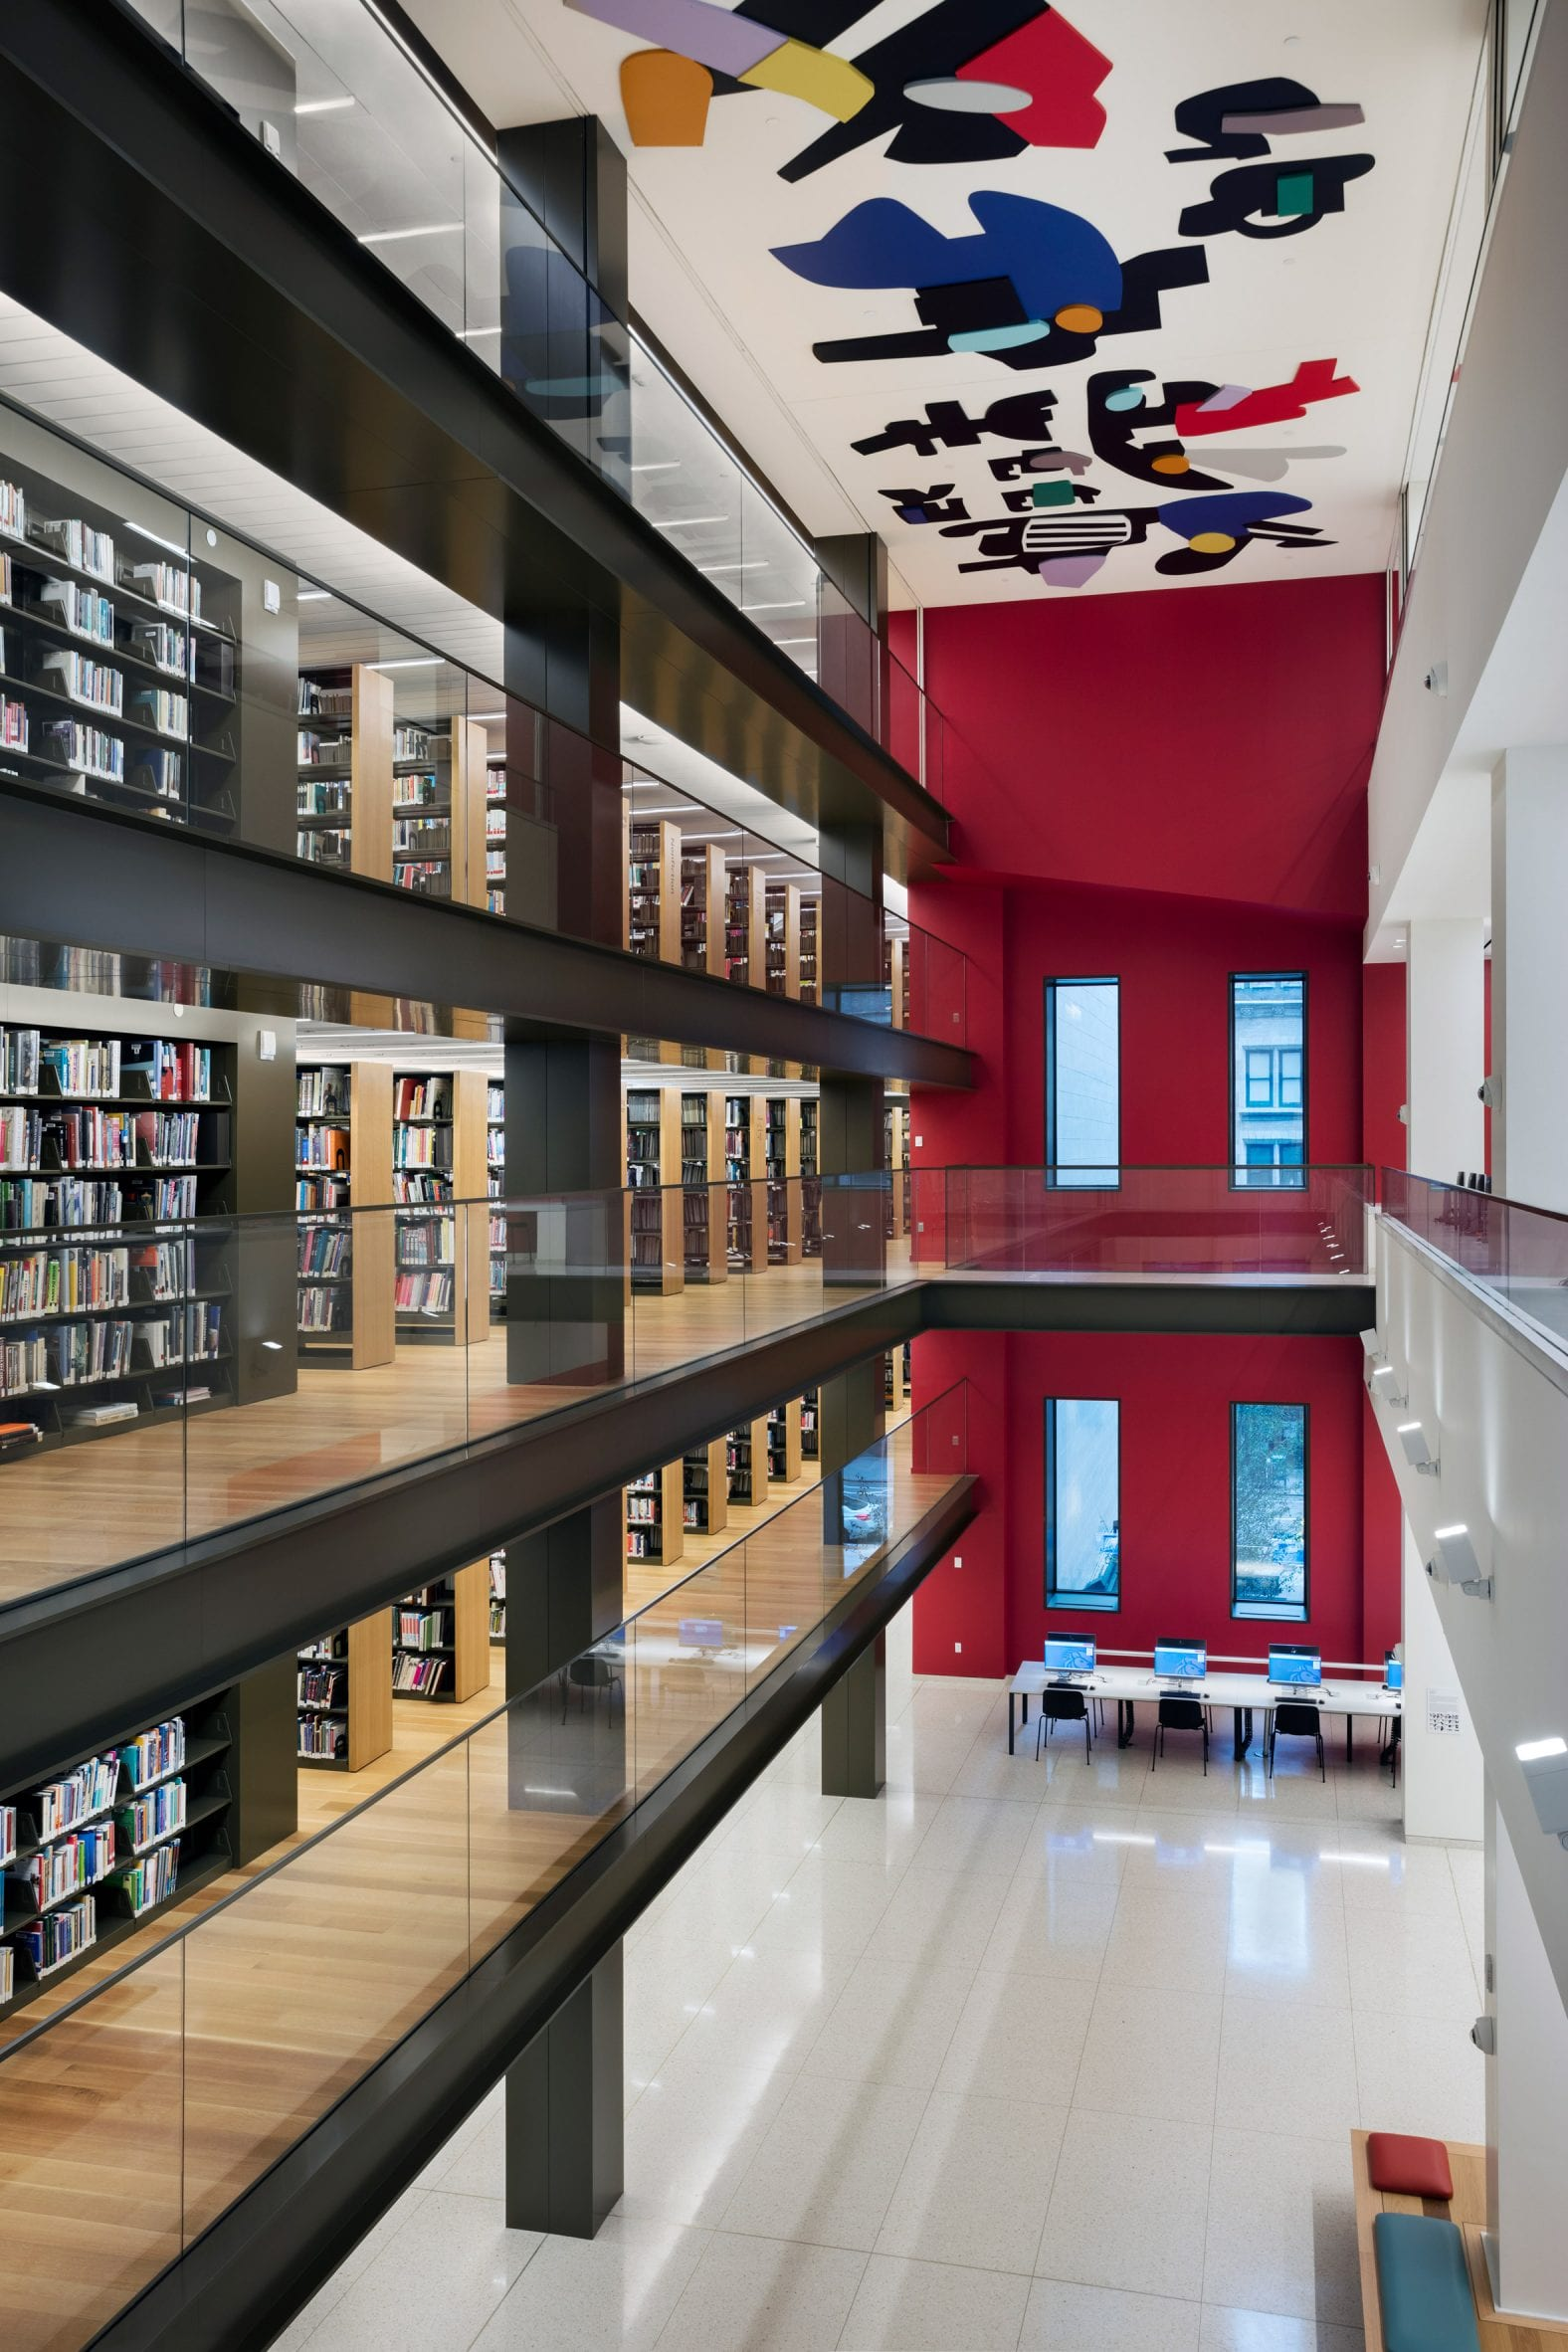 Stavros Niarchos Foundation Library atrium with bookshelves on one side